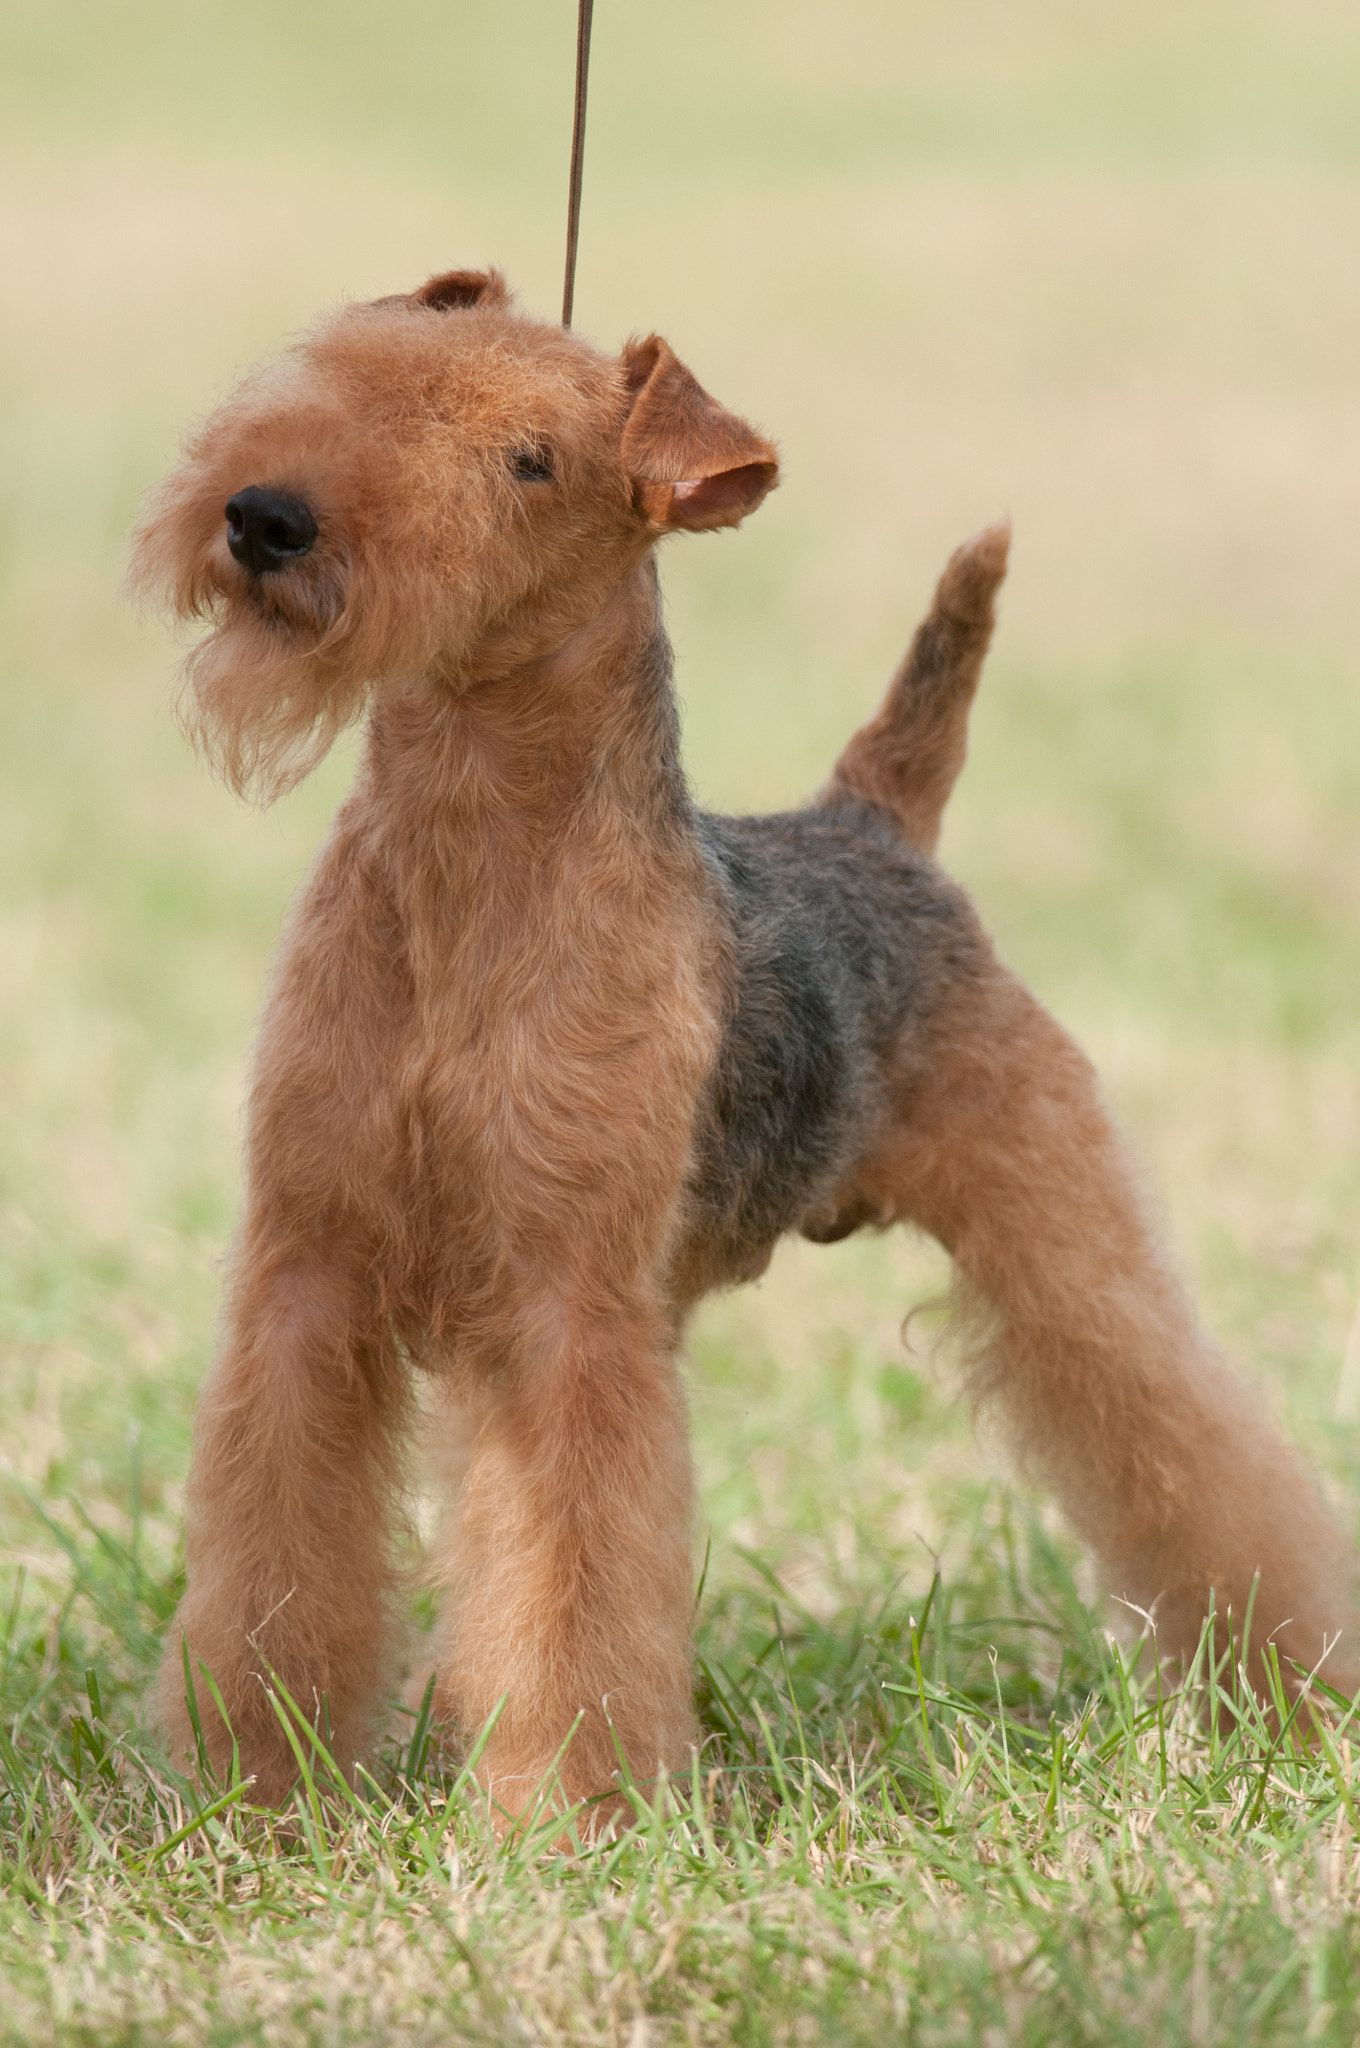 Lakeland Terrier Lakeland Terrier At The Hickories Circuit Dog Show In Upstate Ny In 2020 Lakeland Terrier Terrier Dog Photography